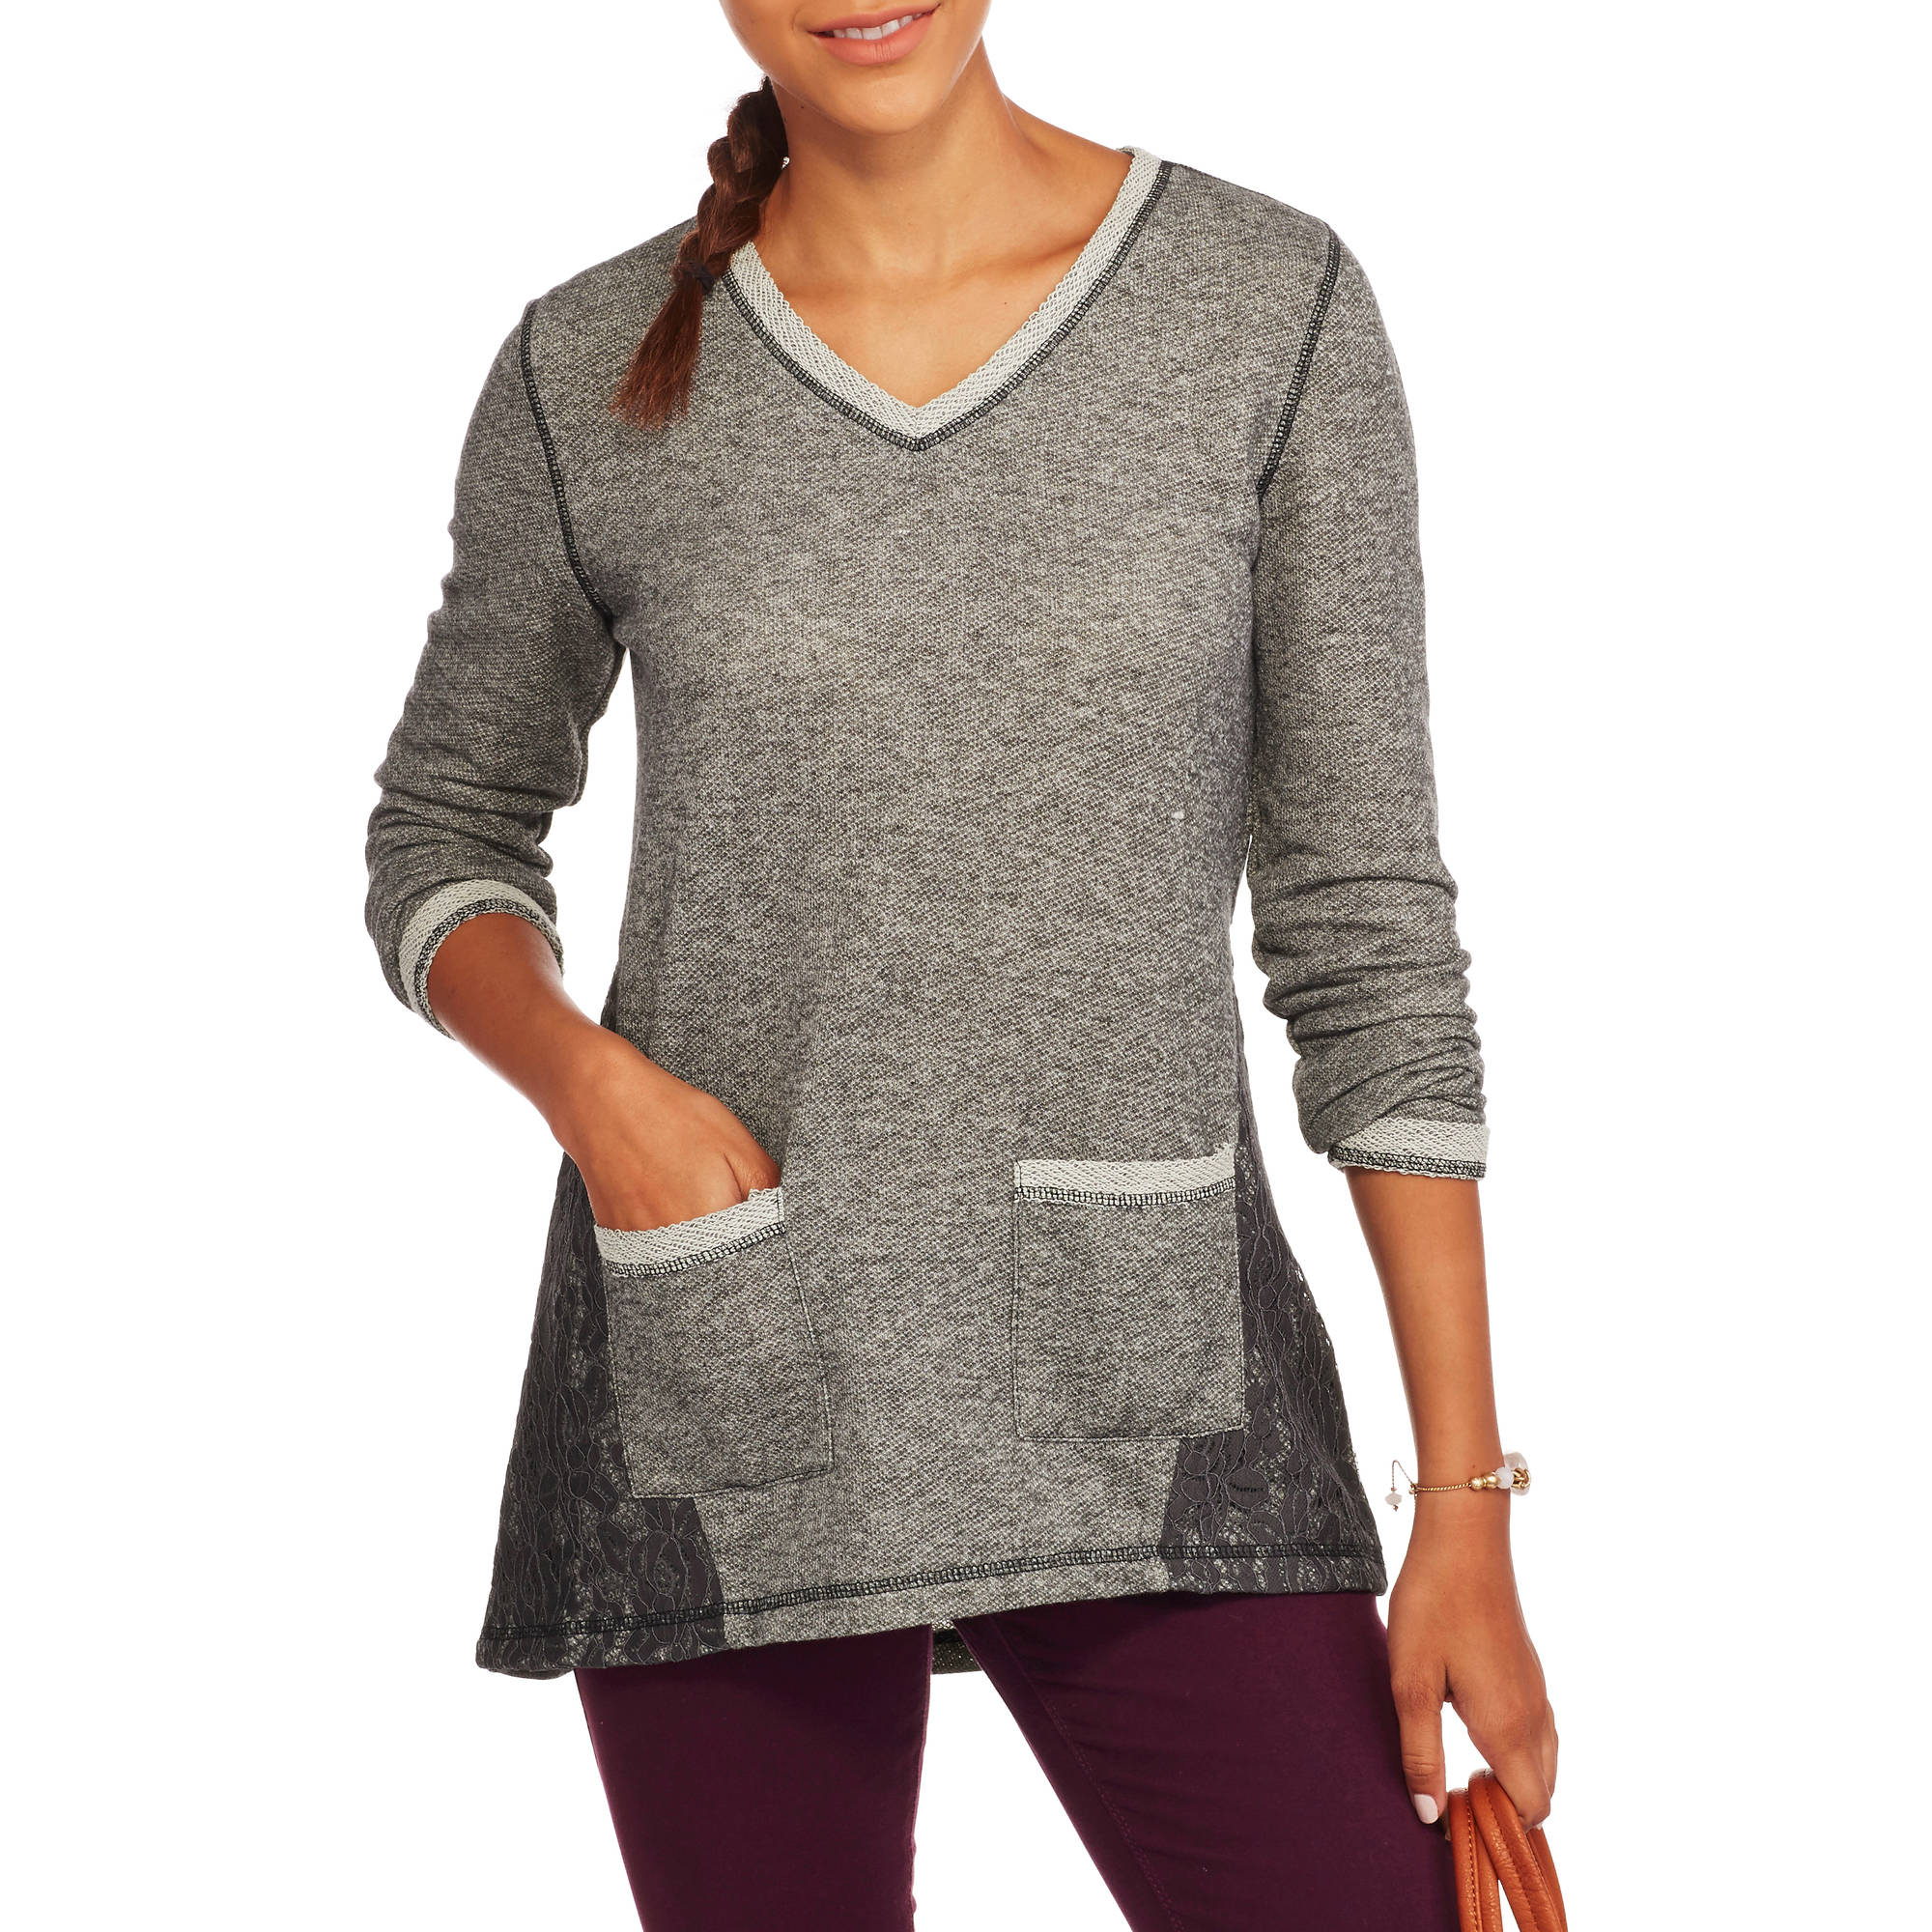 French Laundry Women's French Terry Tunic with Lace Overlay